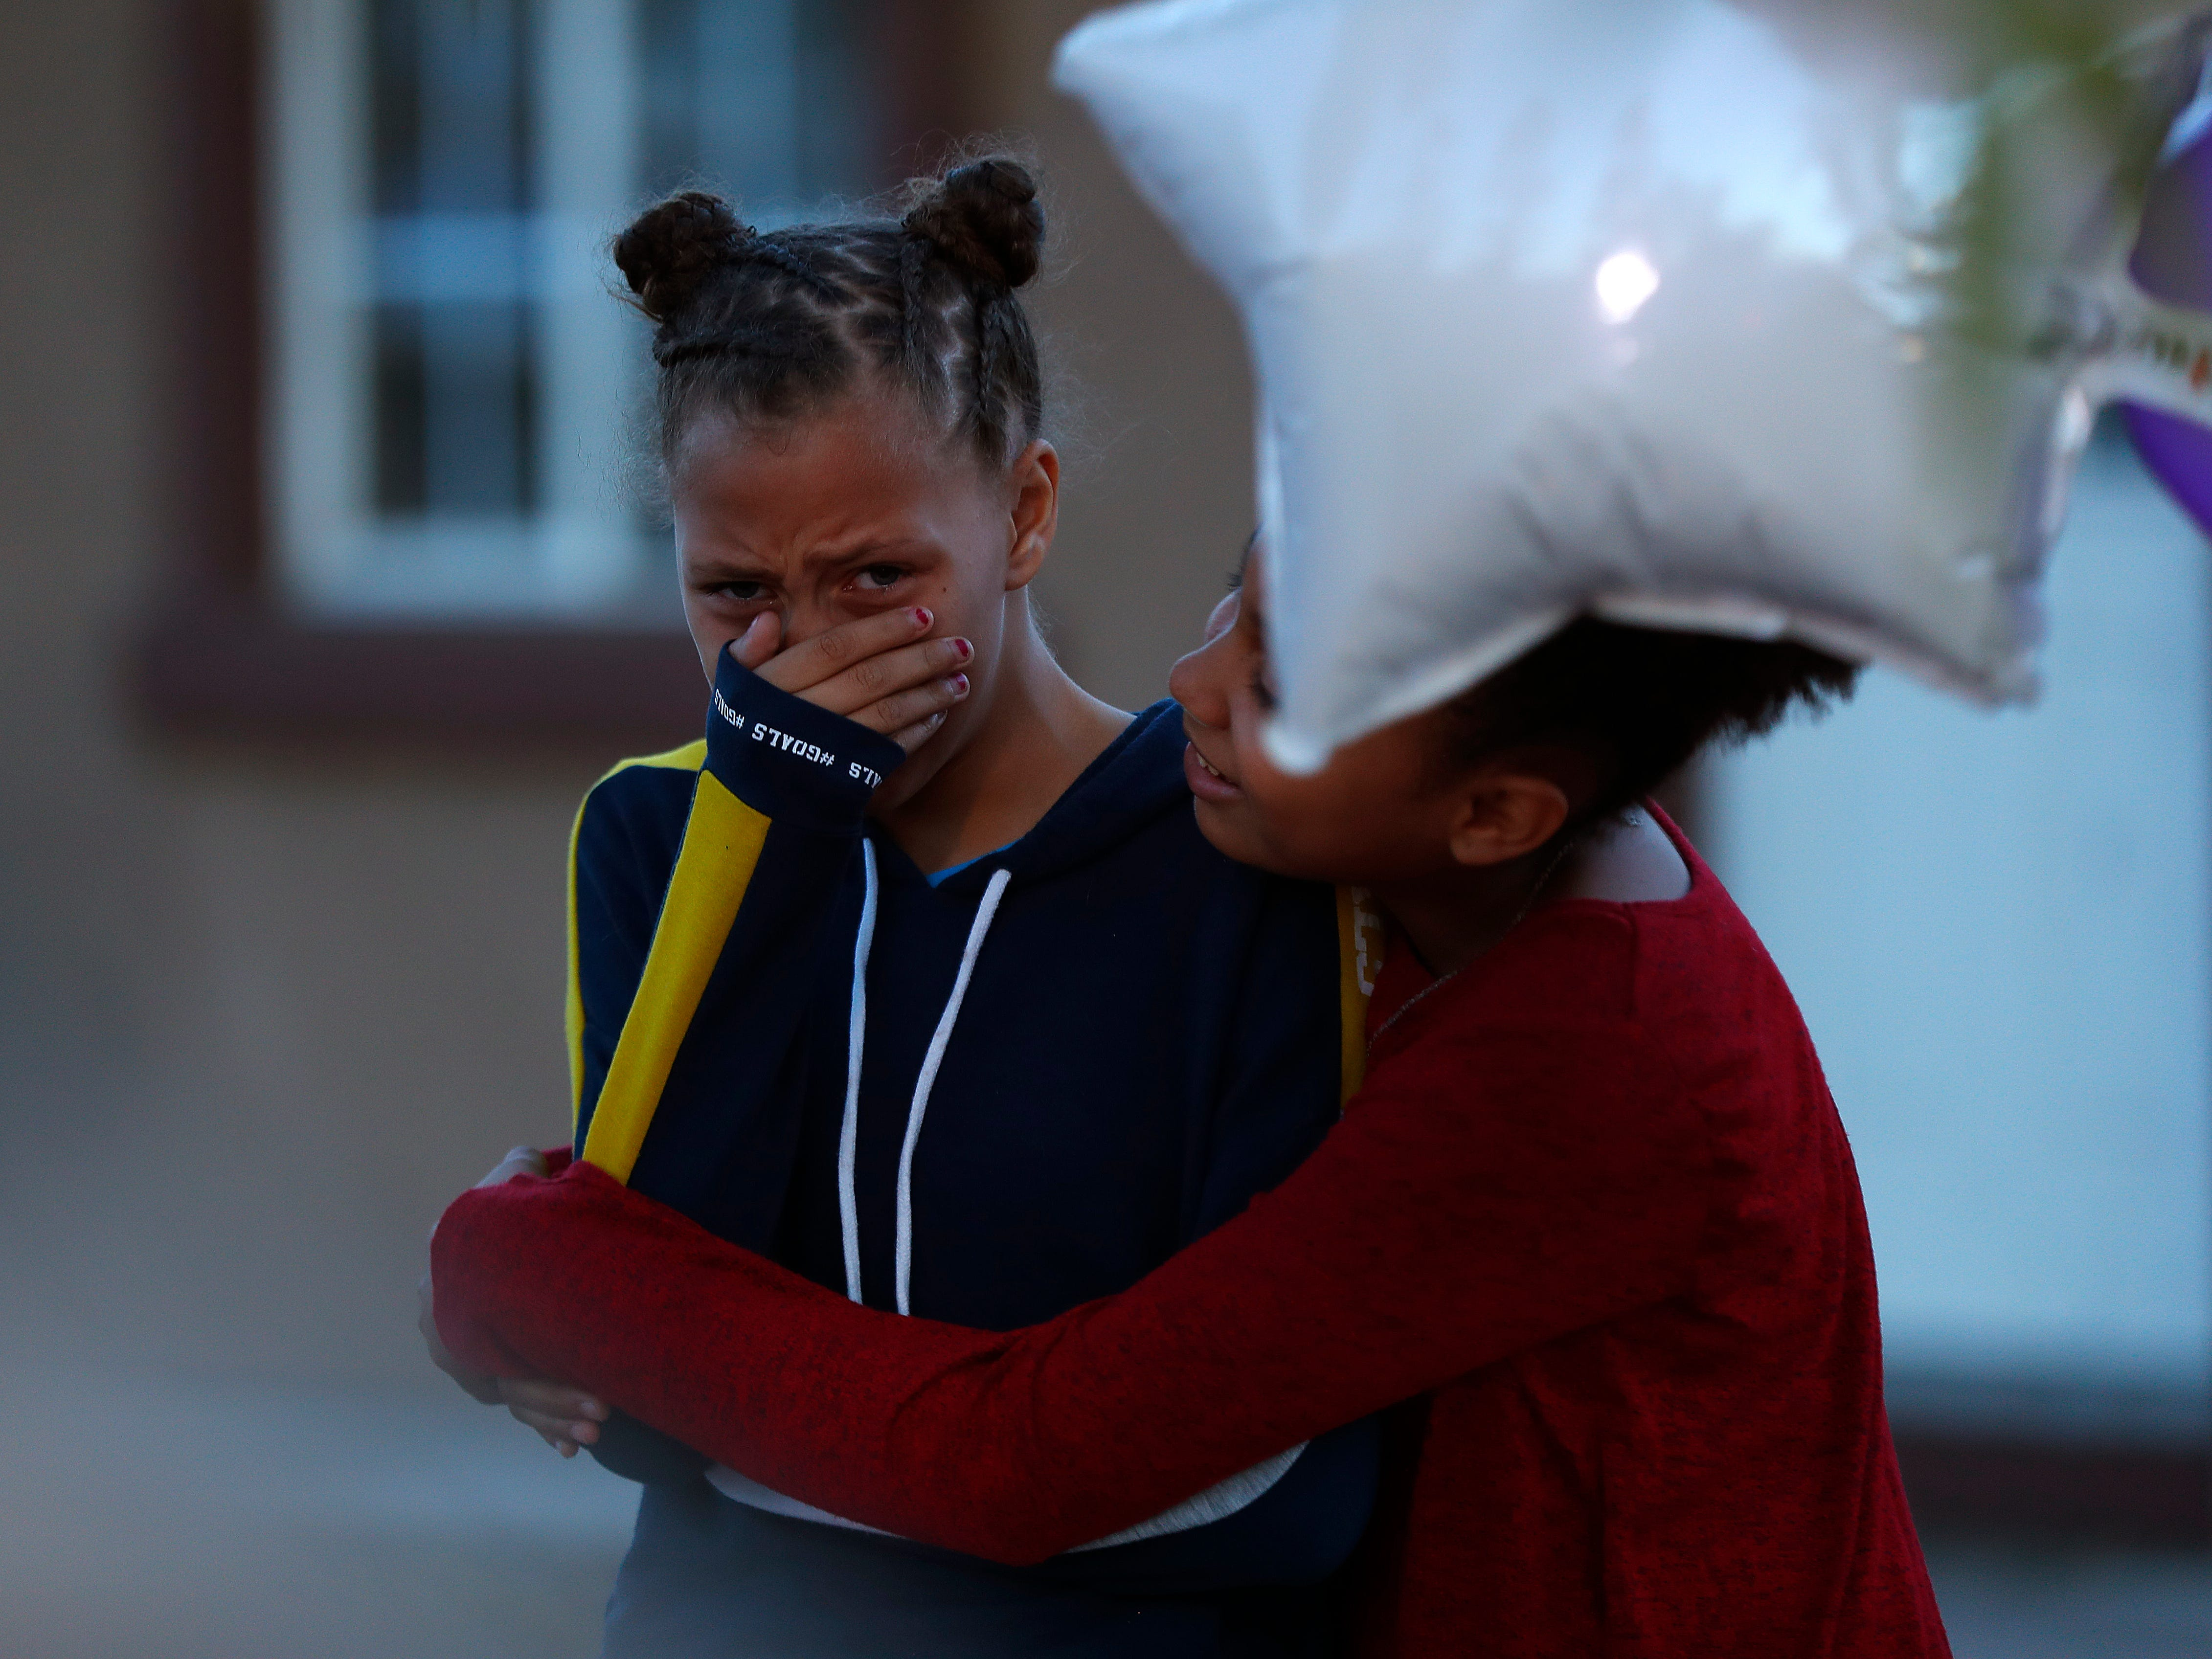 Naima hugs Lilly Hernandez as the two cry at a vigil for Summer Bell Brown on April 5, 2019, outside her home where she was shot and killed in Phoenix. Naima and Lilly were friends of Brown, who was 10 years old.